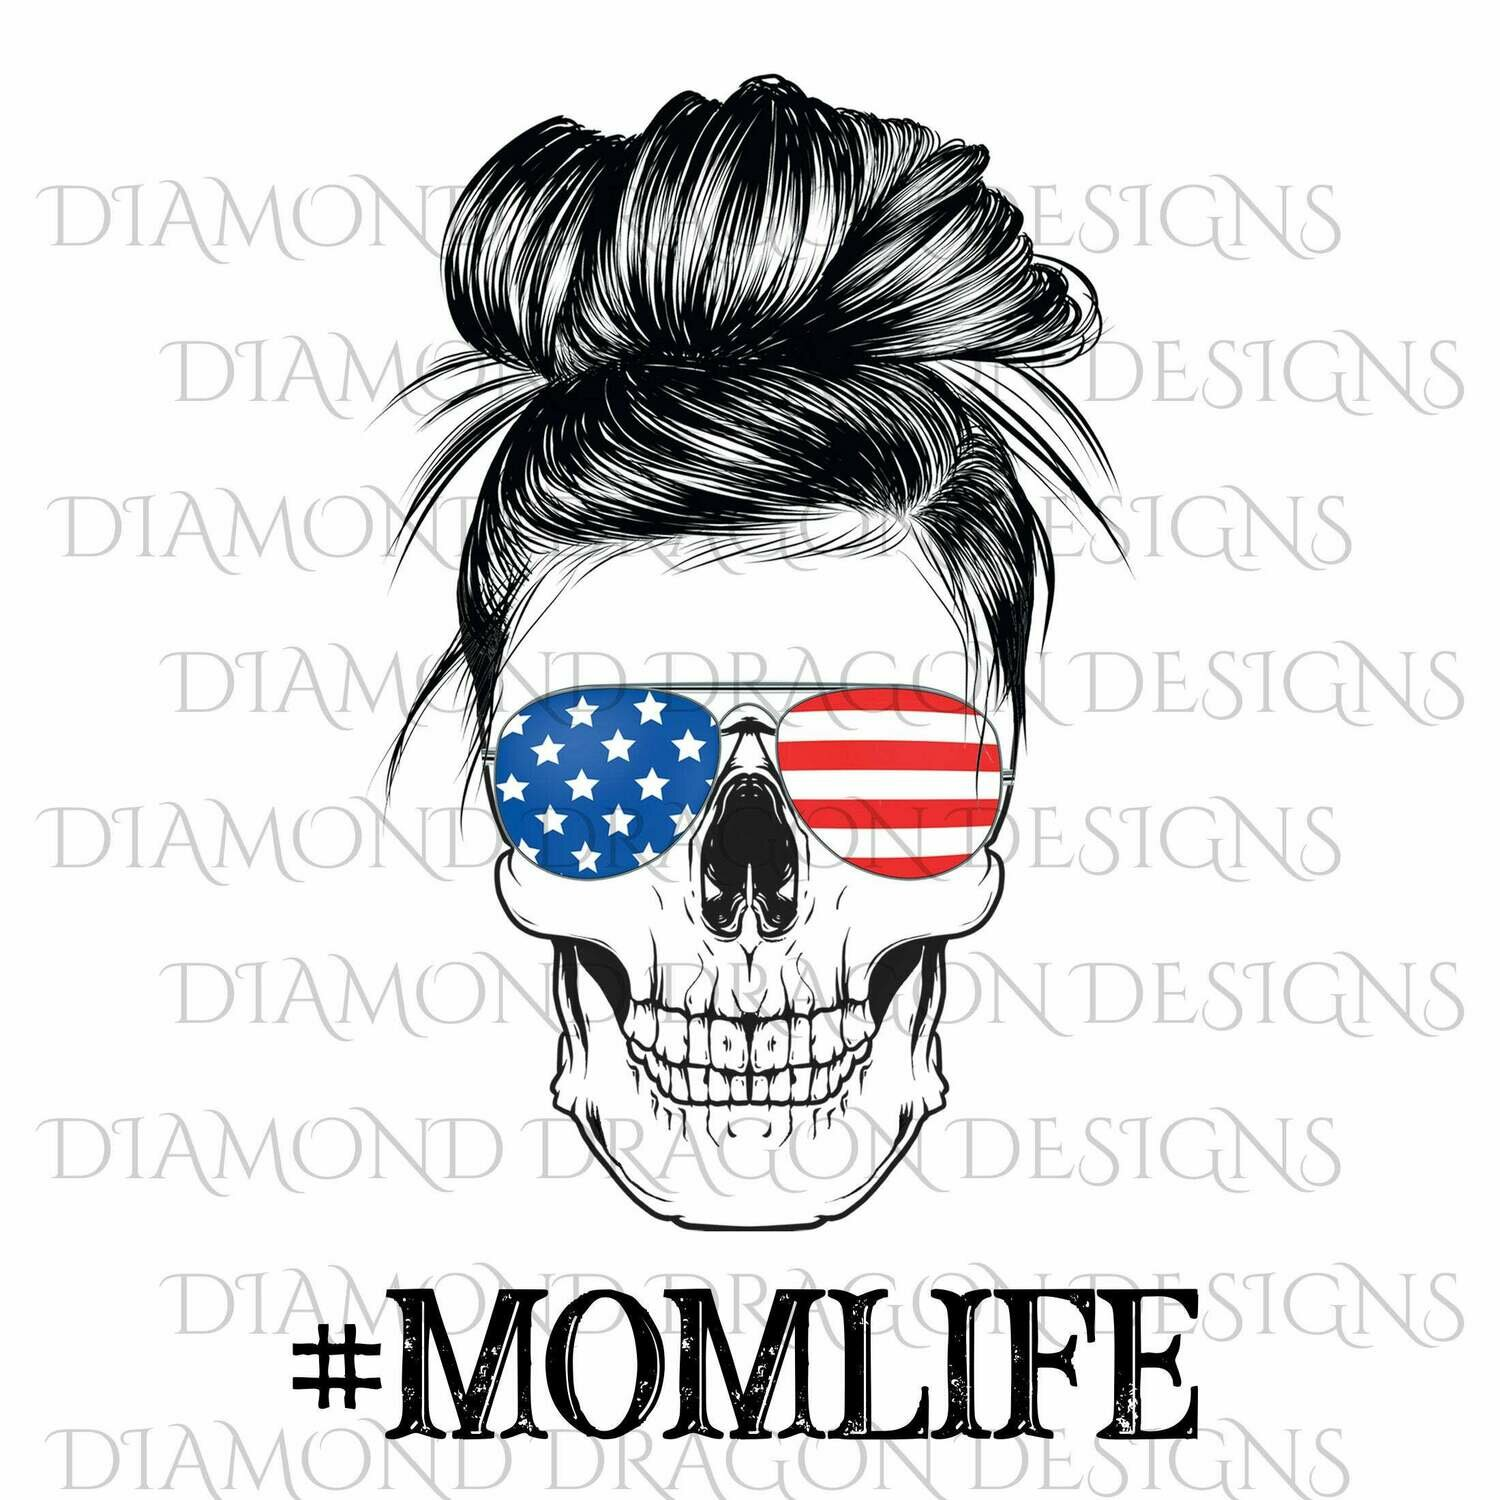 Skulls - Mom Life, #momlife, Messy Bun Skull, Sunglasses Skull, Patriotic, 4th of July, Skull Flag Sunglasses, Waterslide